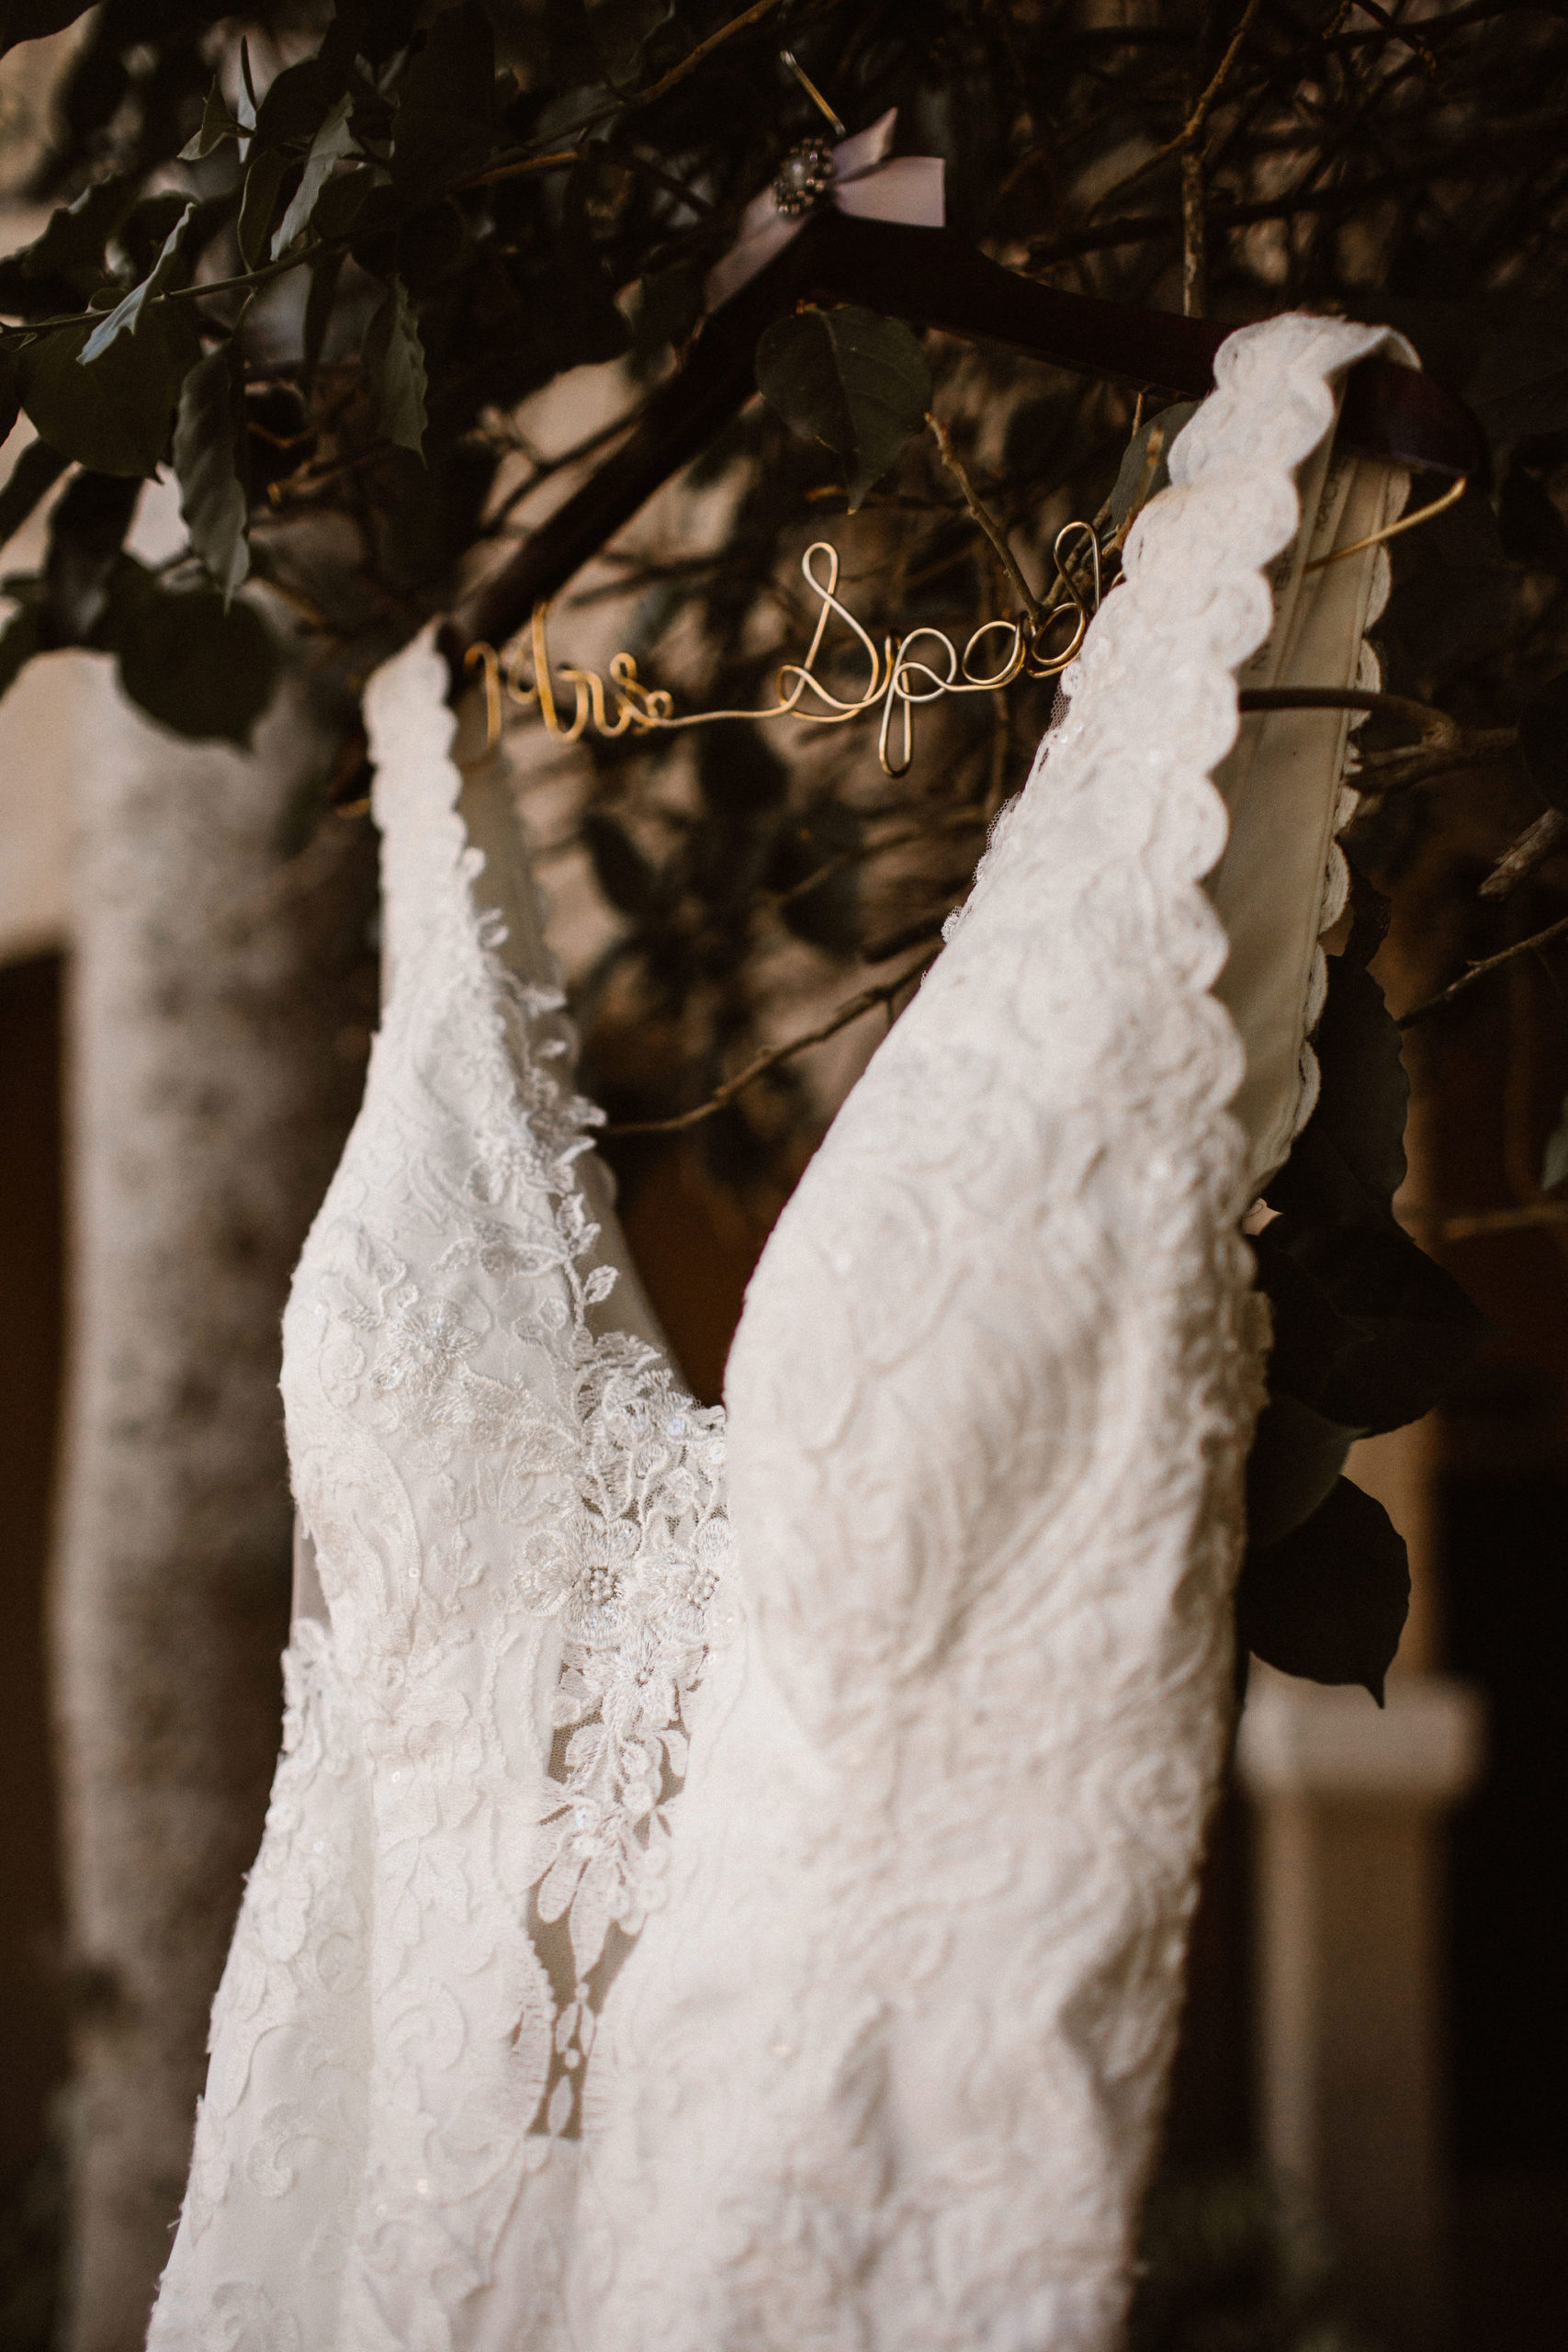 brides dress hanging on custom hanger